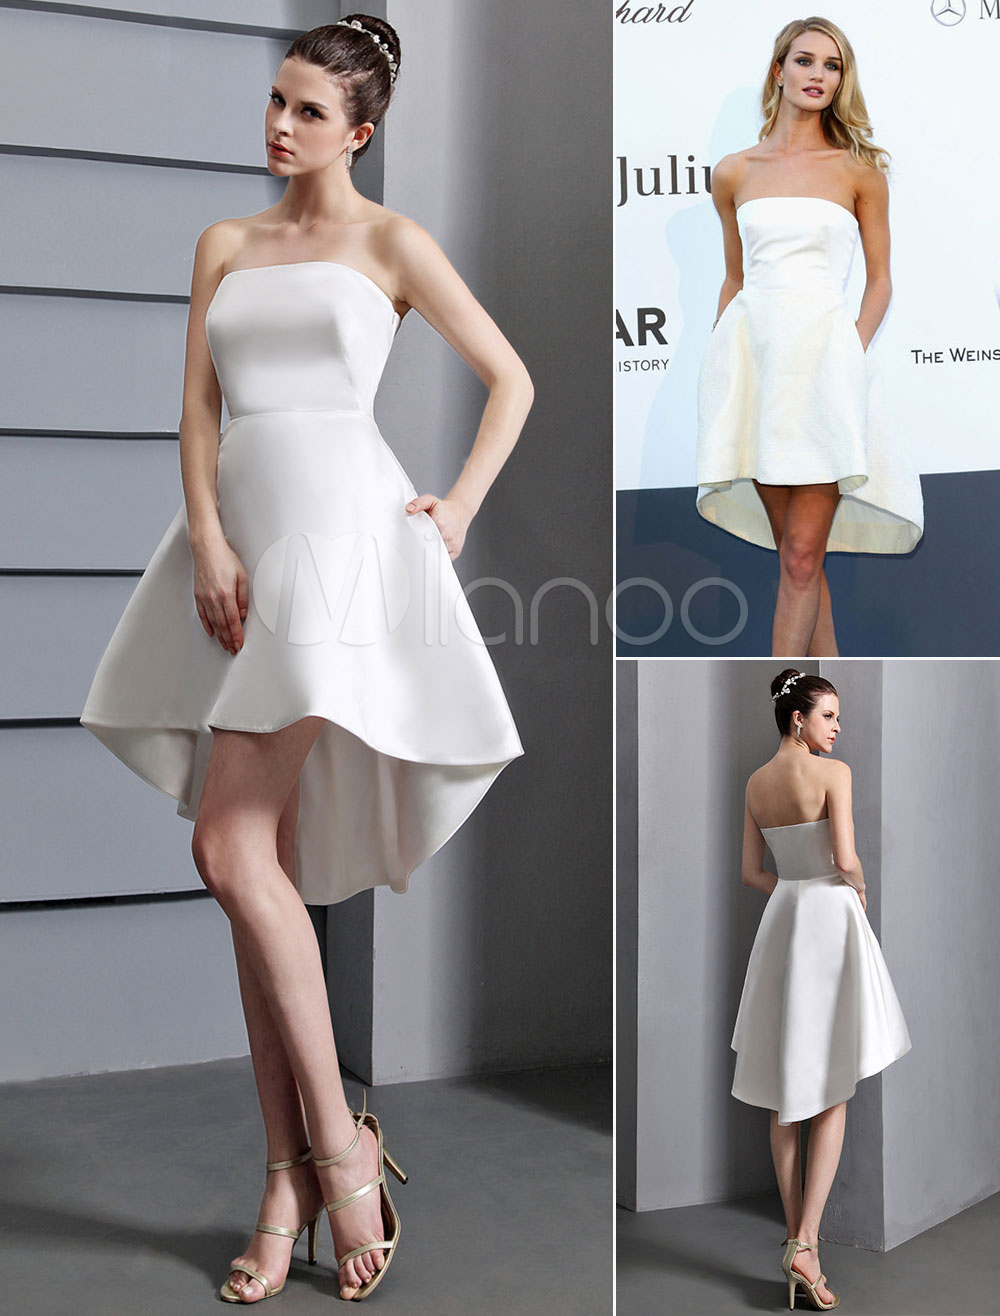 Buy White Prom Dresses 2018 Short Ivory Strapless Backless Cocktail Dress High Low Satin Party Dress for $89.99 in Milanoo store